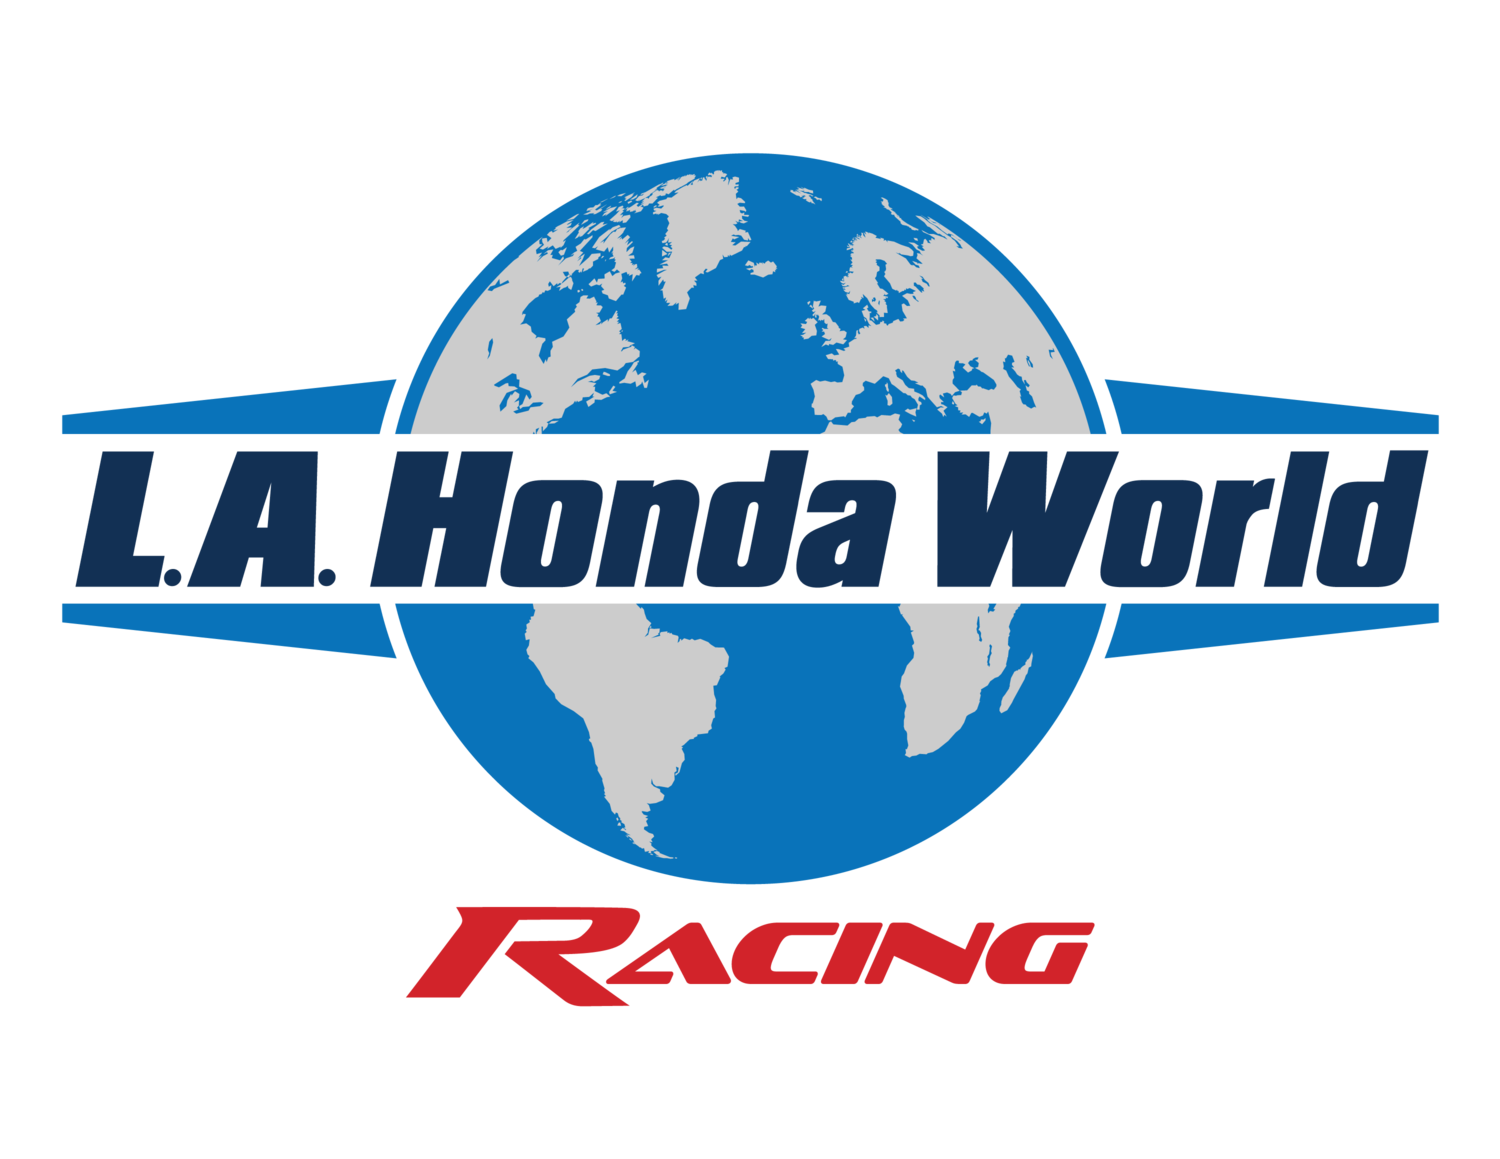 L A  Honda World Racing to Participate in TC America Blancpain GT